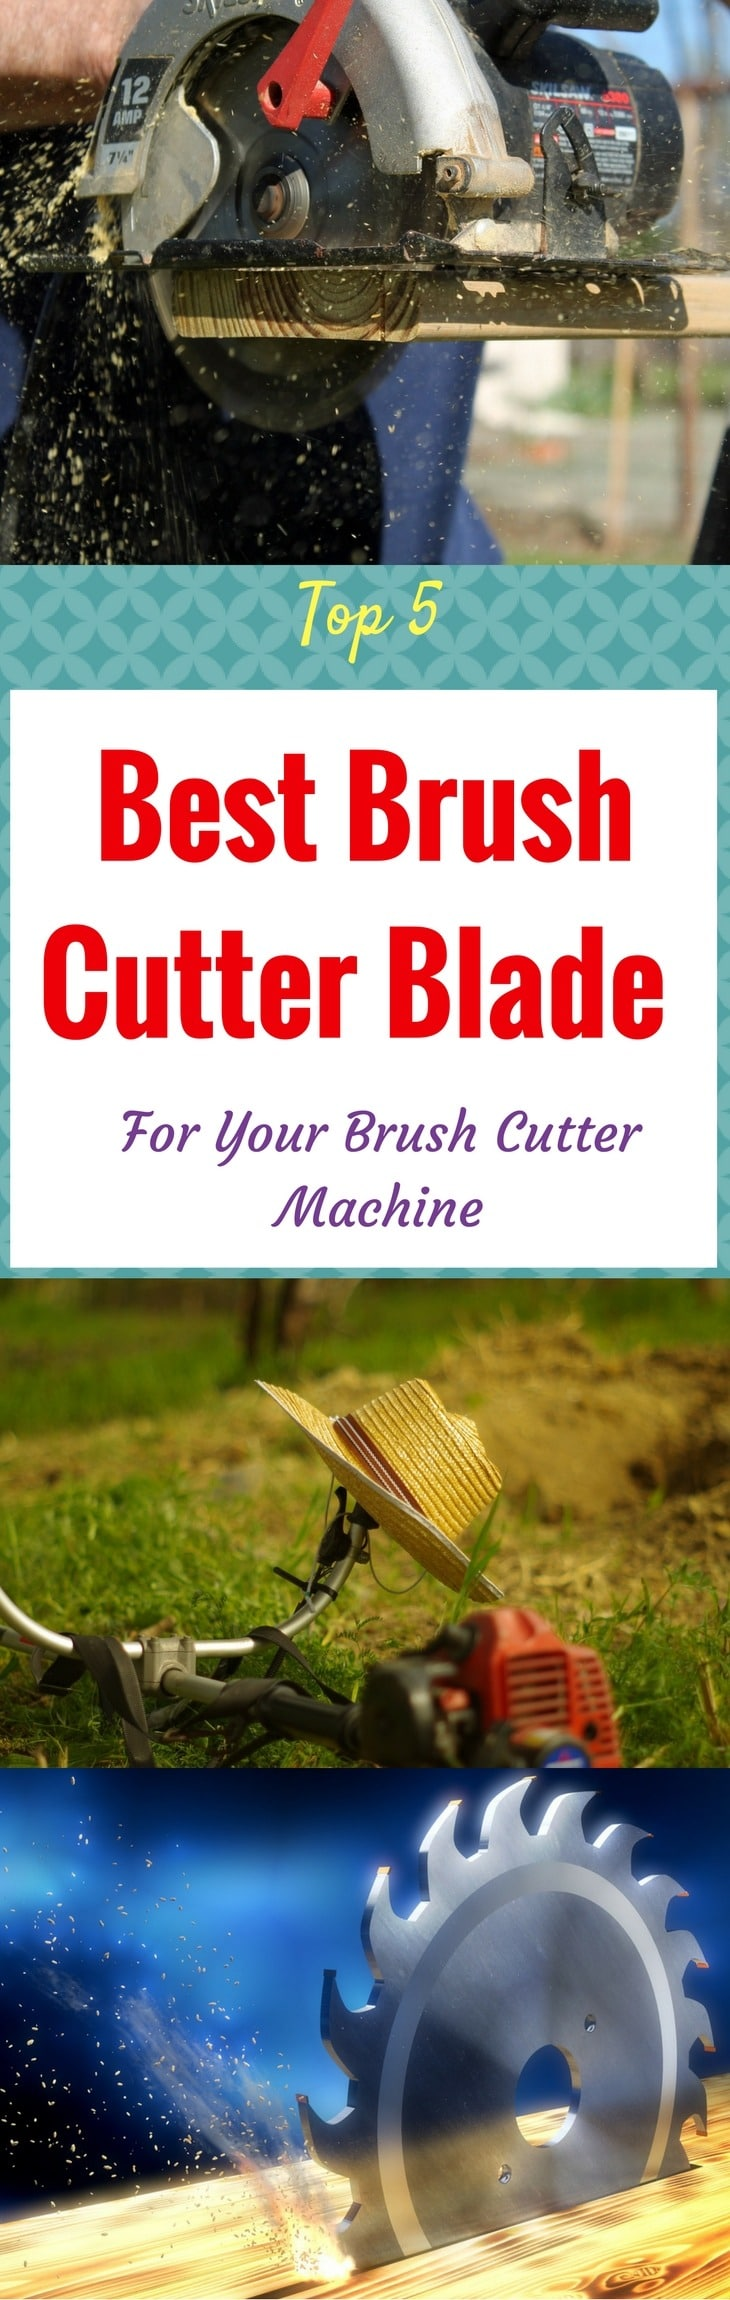 Top 5 Best Brush Cutter Blade For Your Brush Cutter Machine